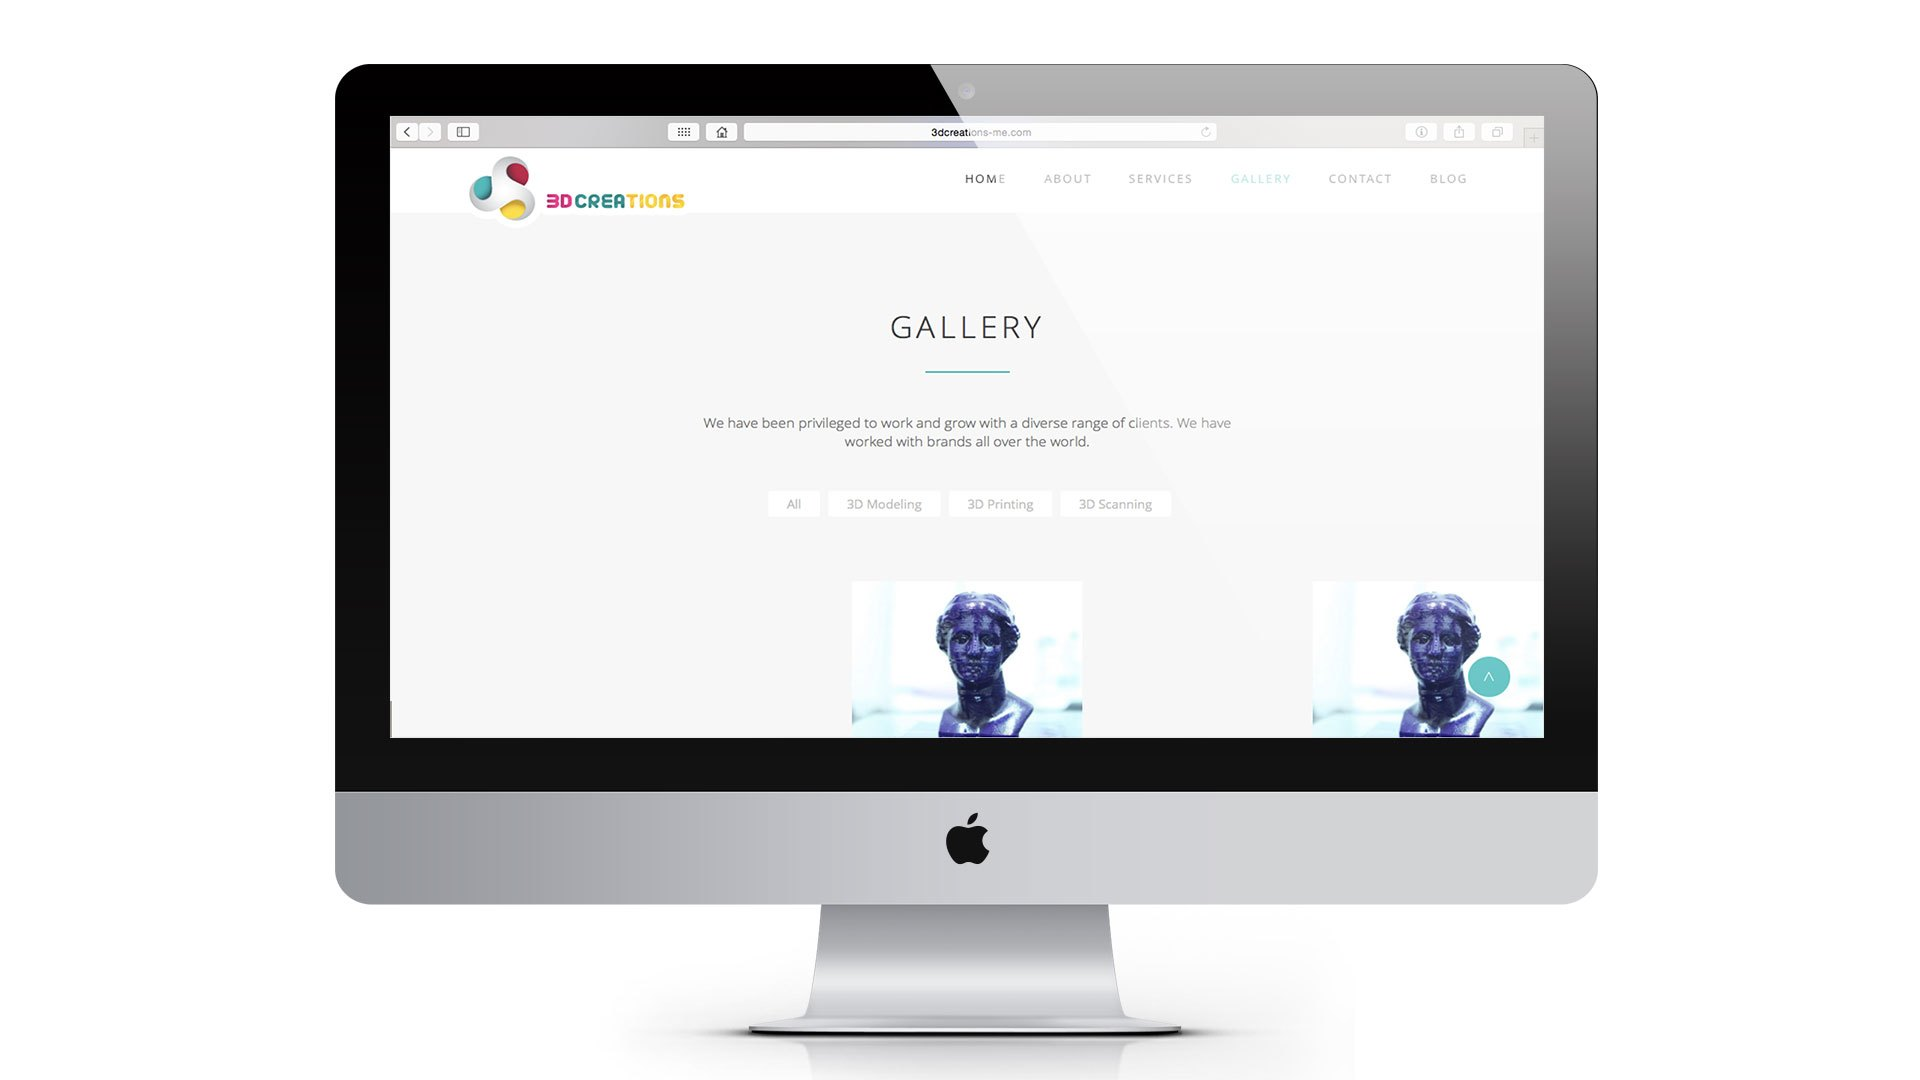 3d-creations-website-Gallery-page